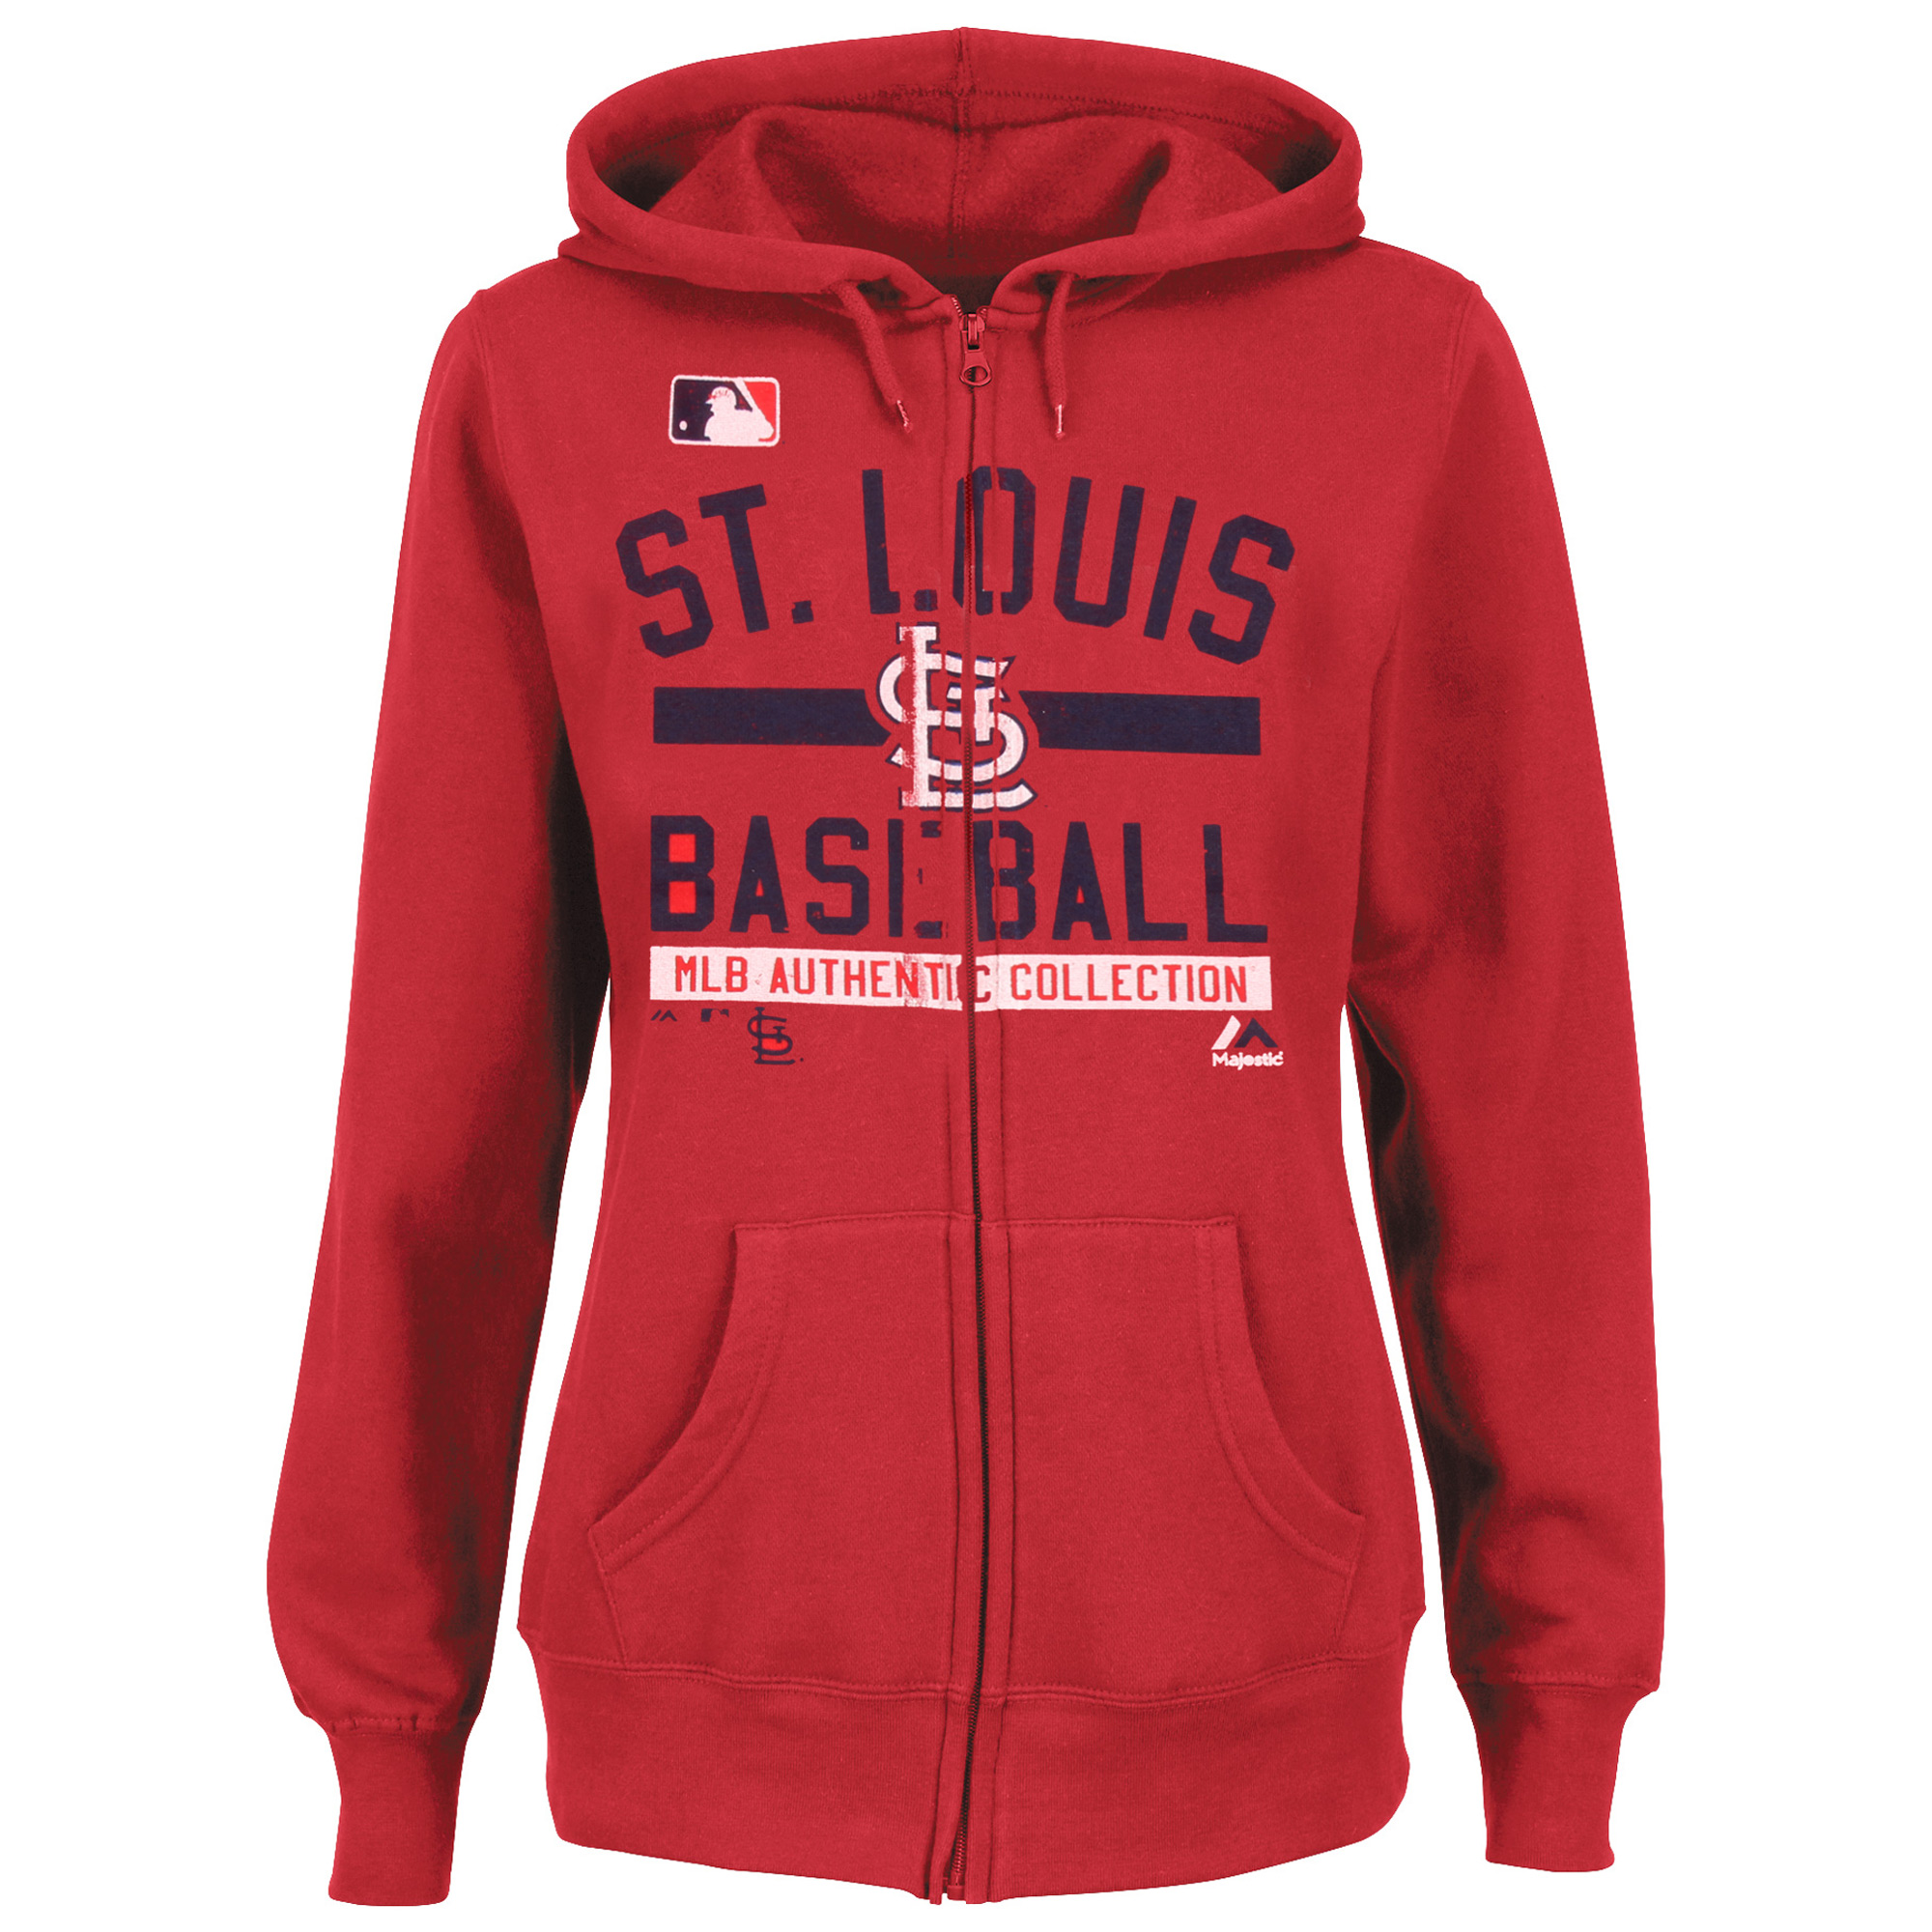 St. Louis Cardinals Majestic Women's Team Property Authentic Collection Full-Zip Hoodie - Red